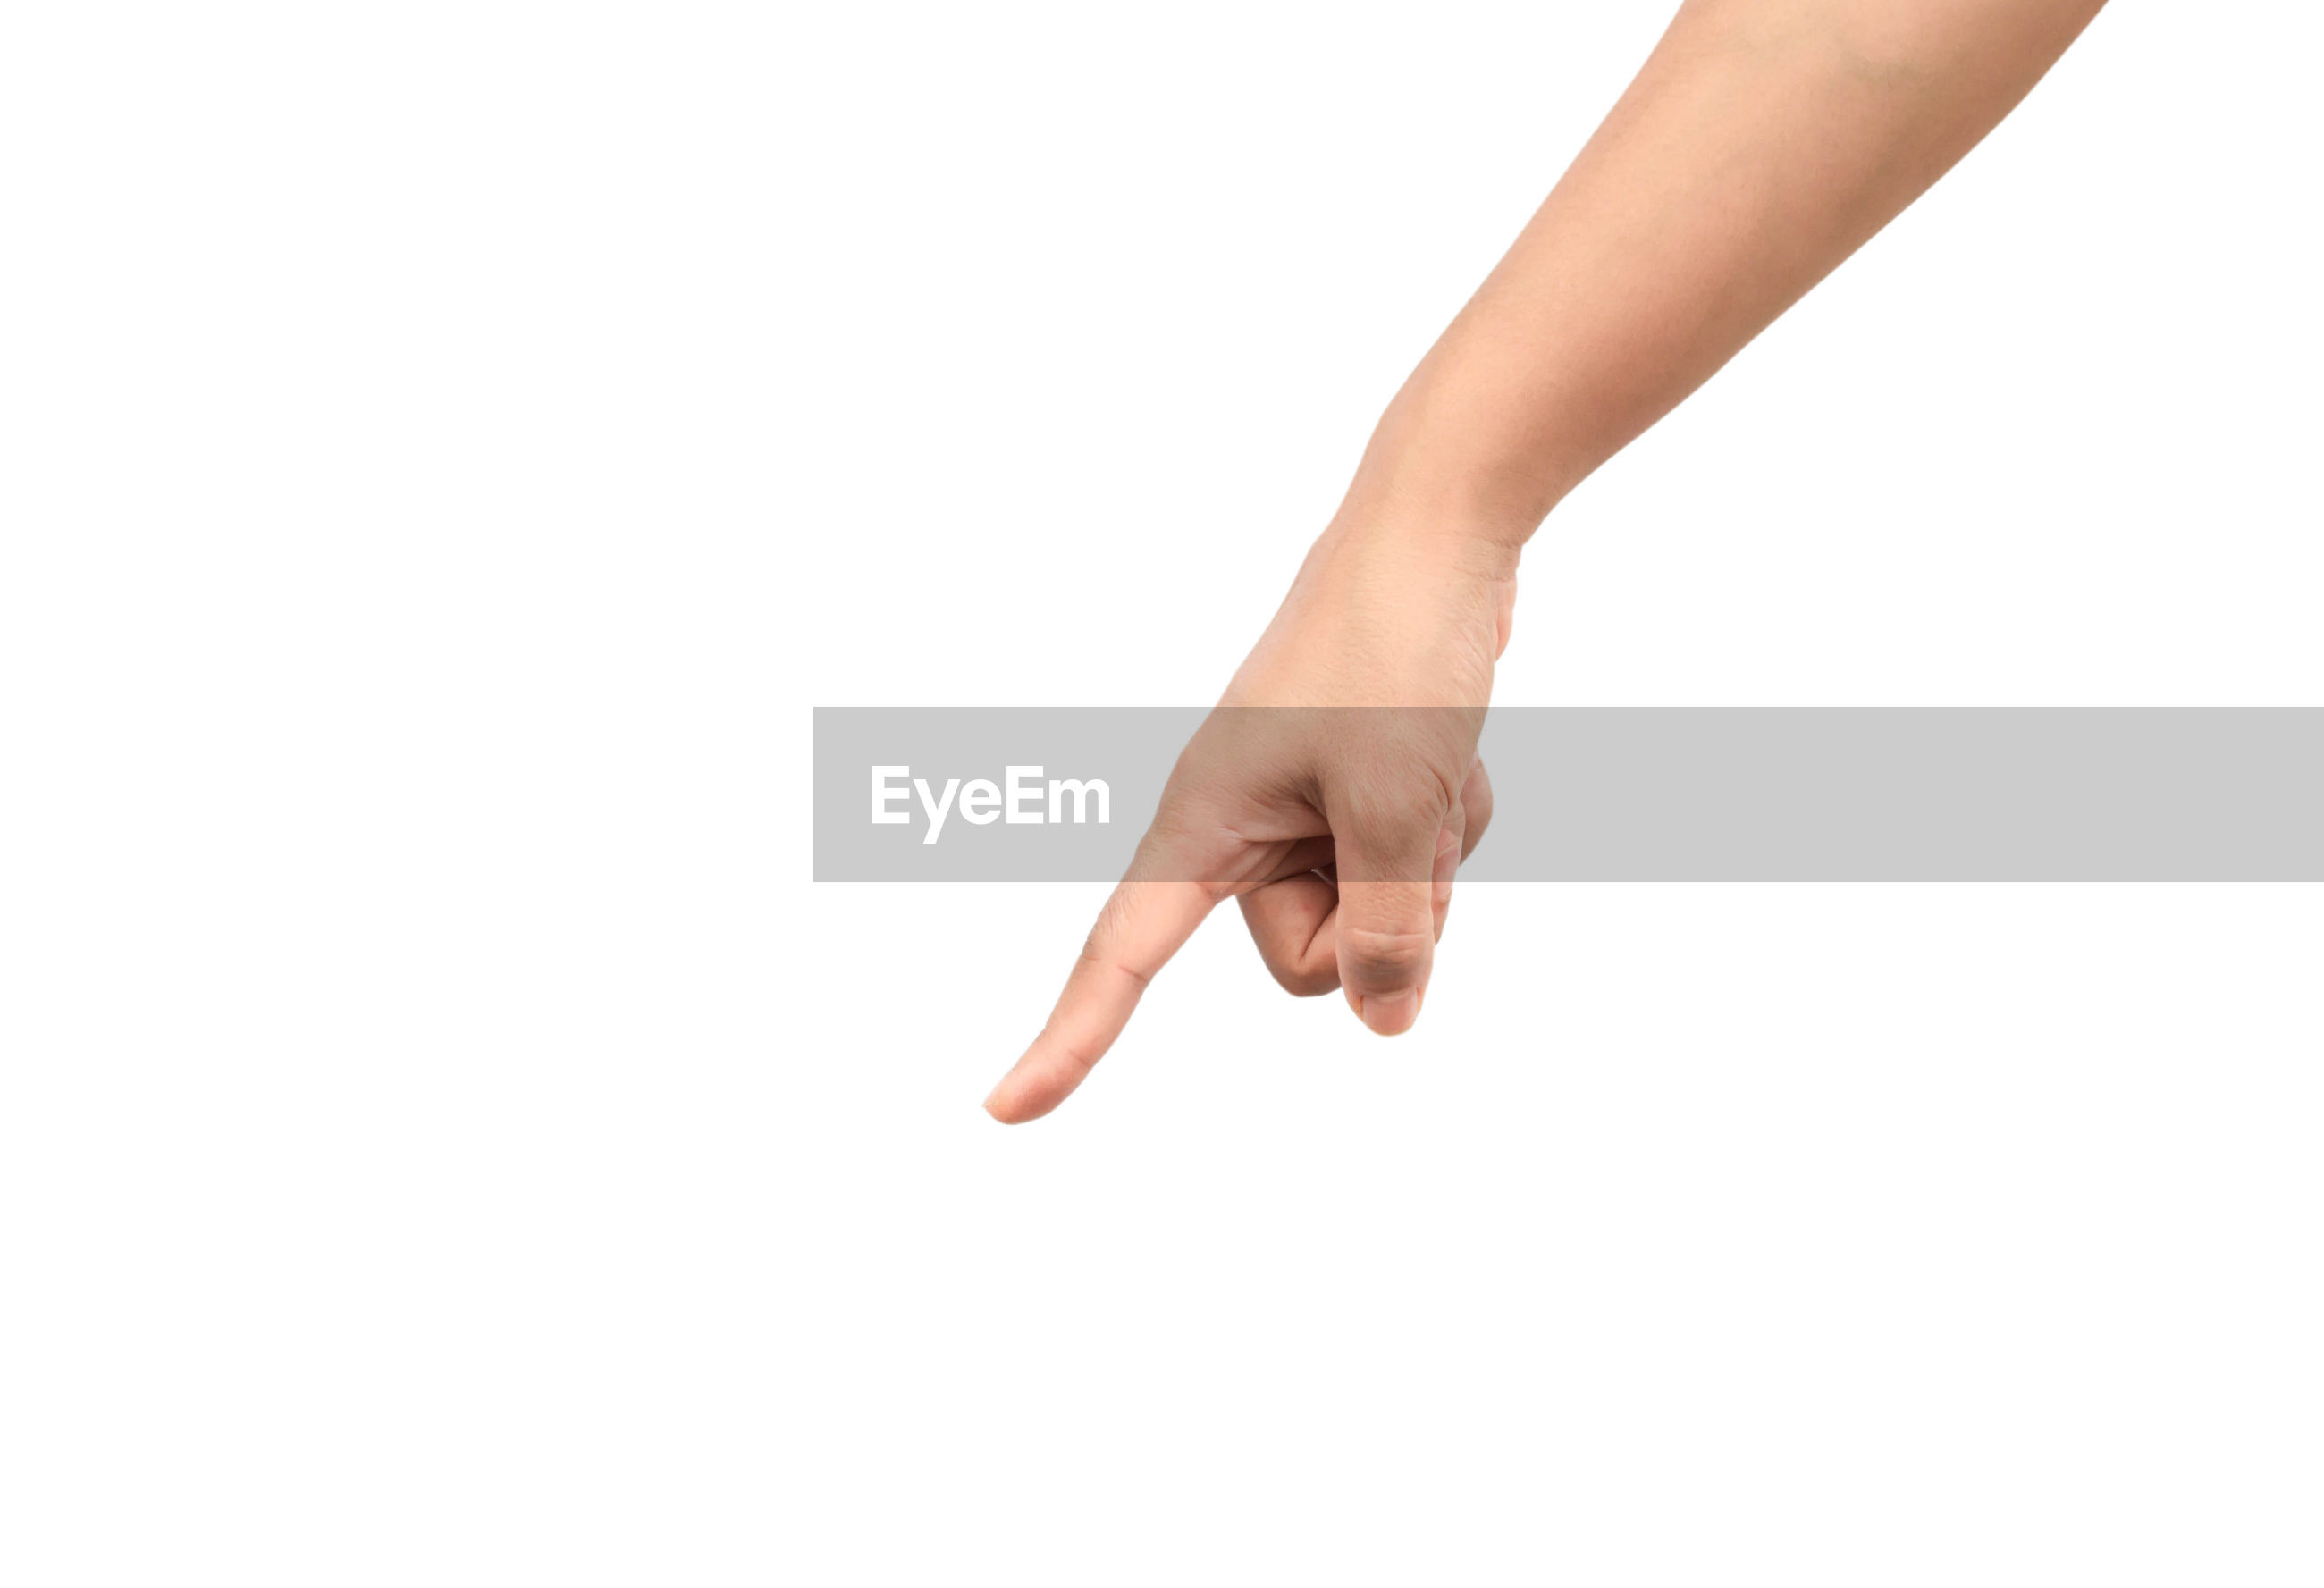 Close-up of human hand pointing against white background